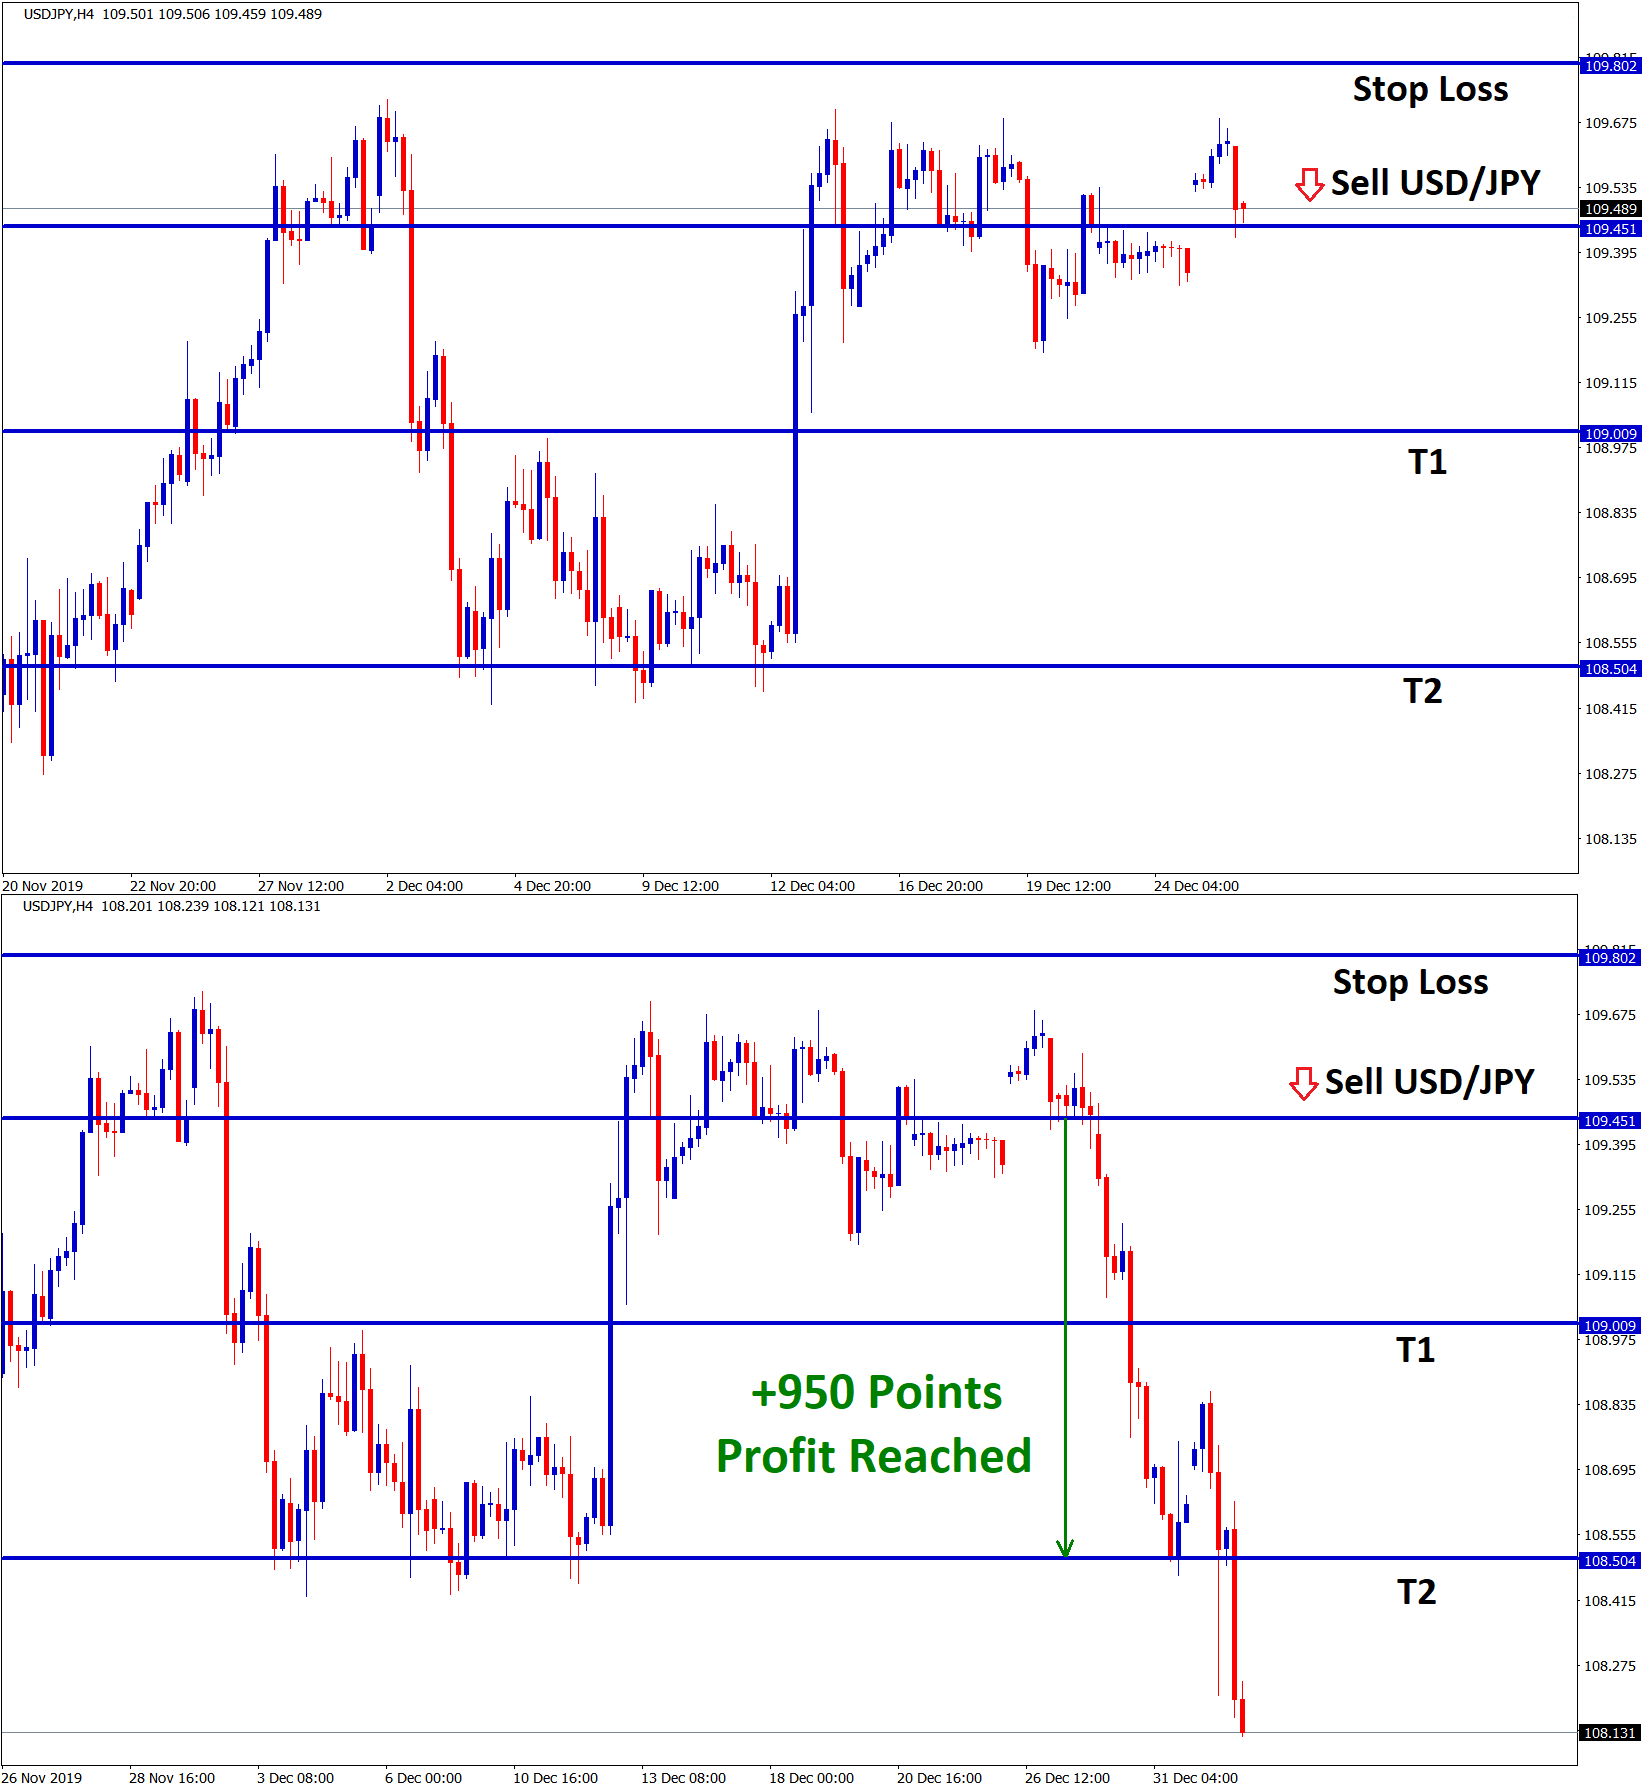 Take profit reached in usd jpy sell signal